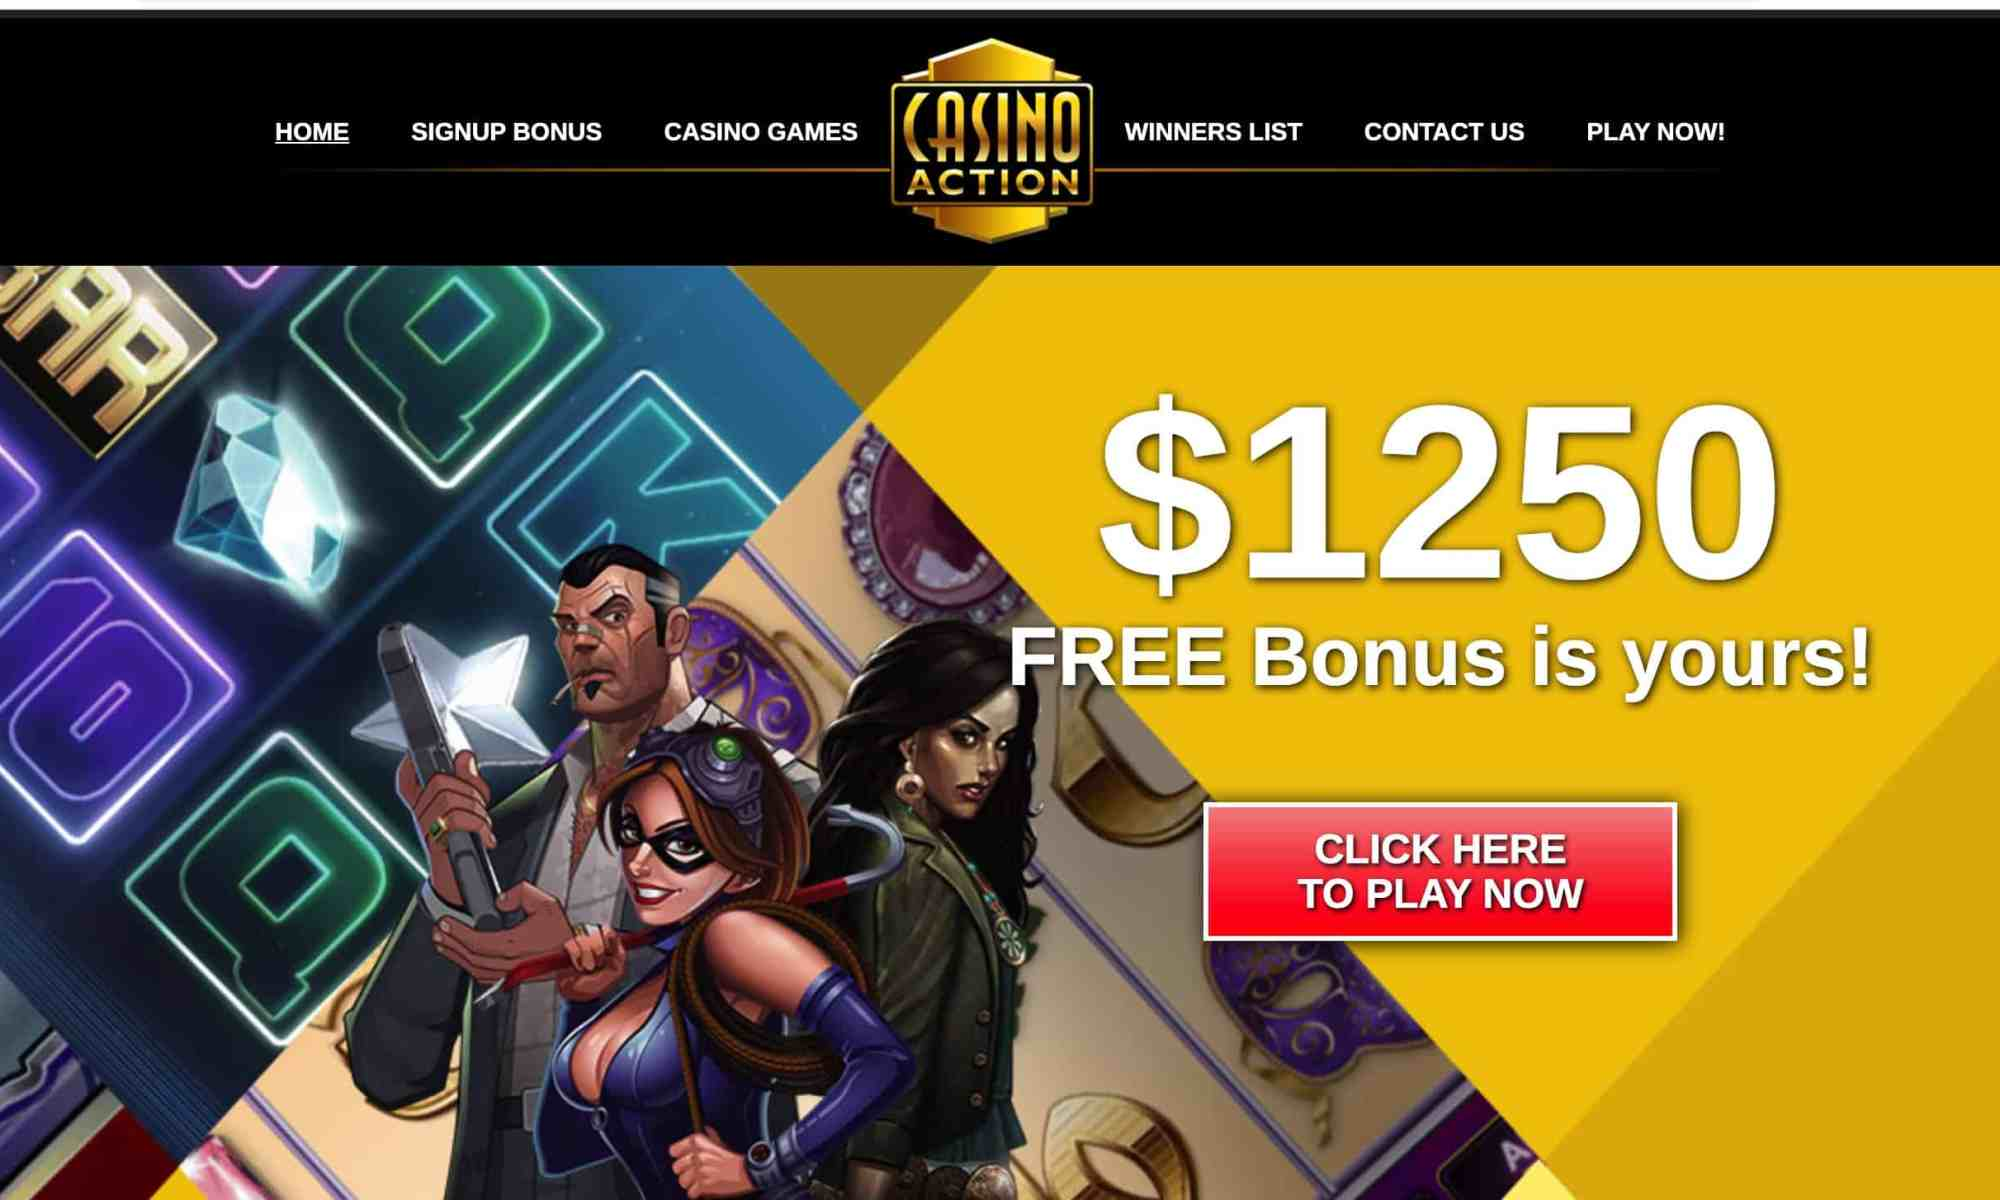 Casino Action - European provider: 1 hour free play